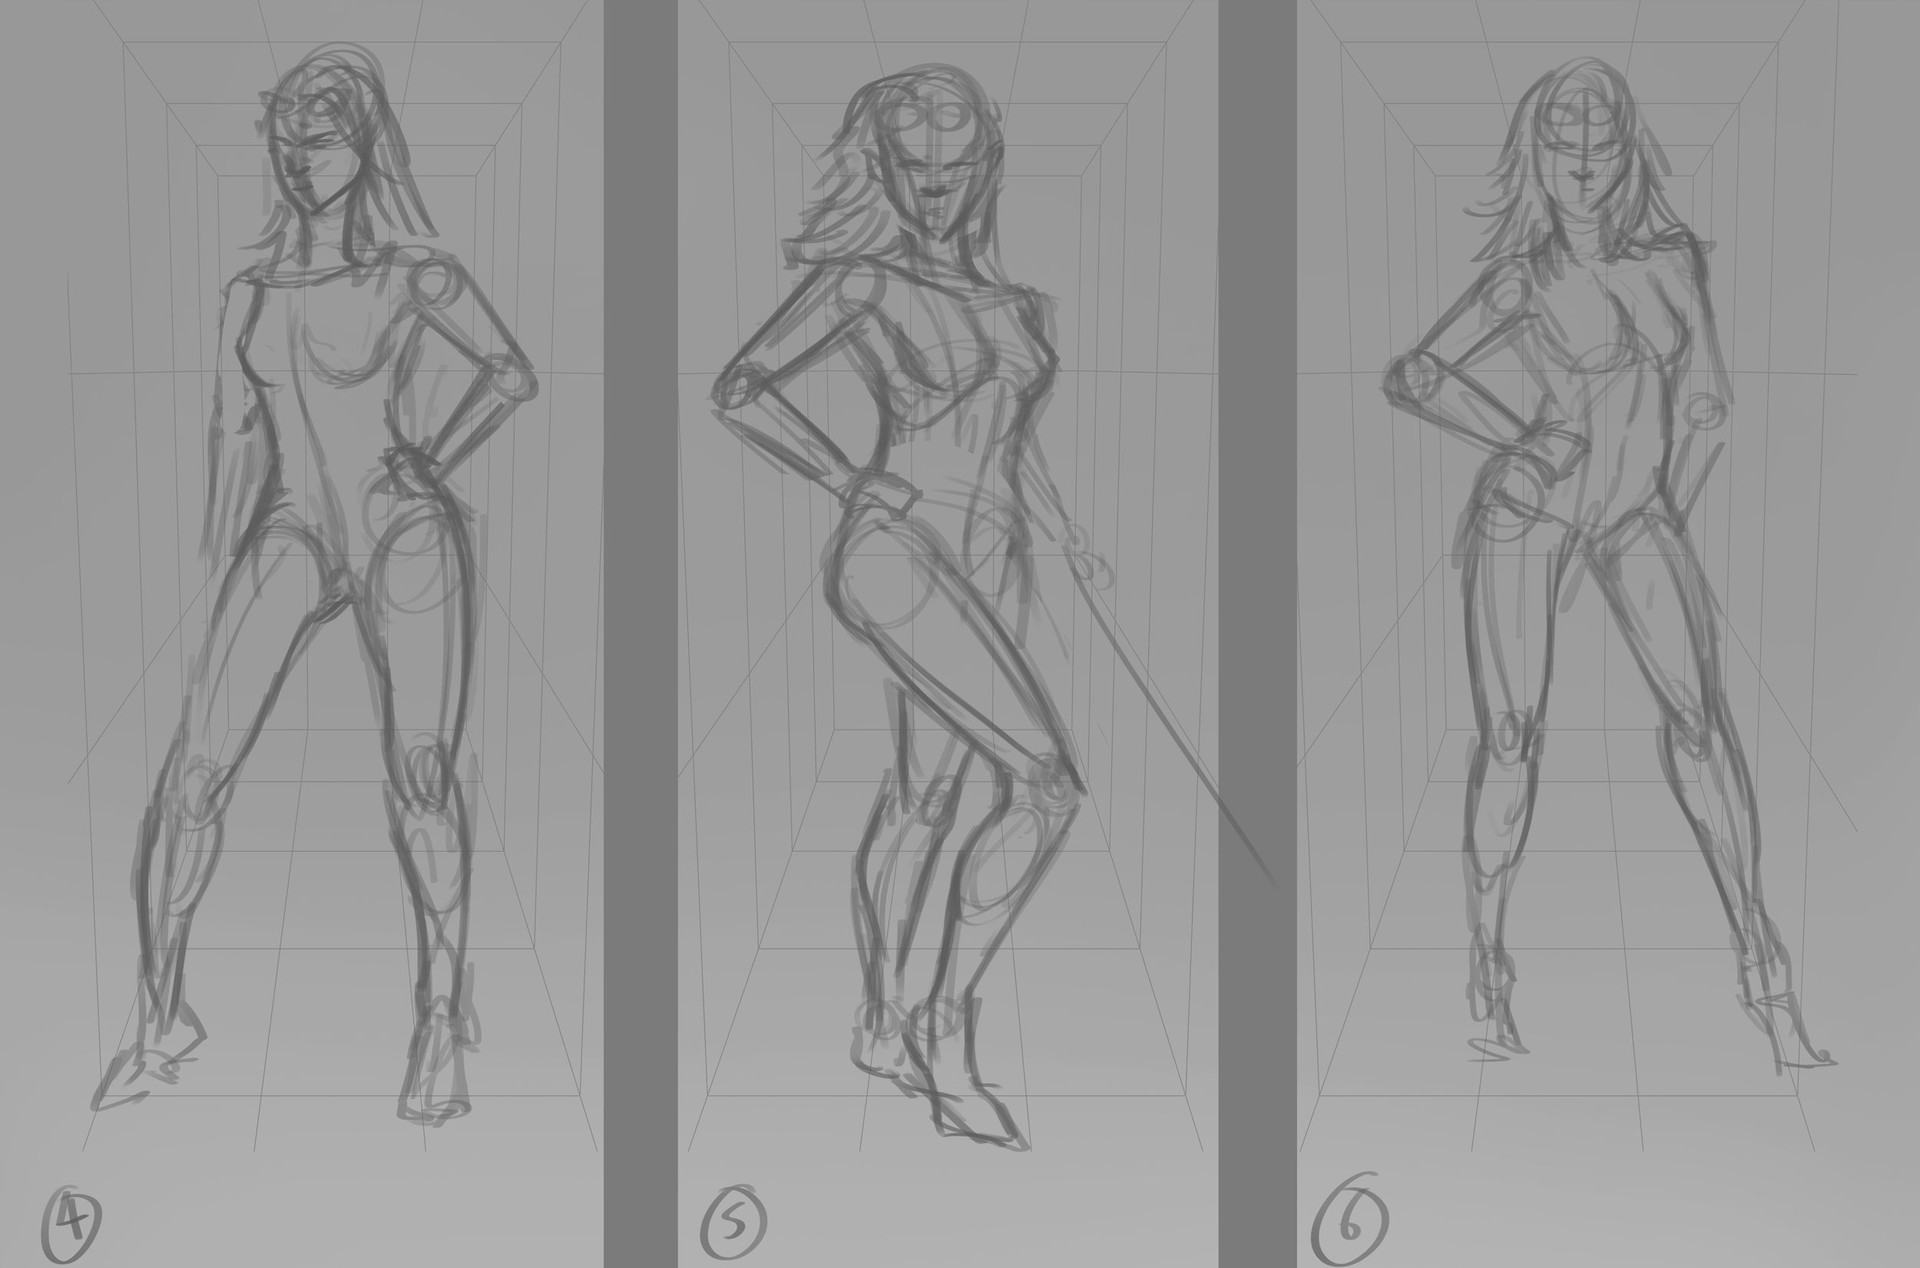 Robert crescenzio eolanna moonhair pose concepts sheet 2